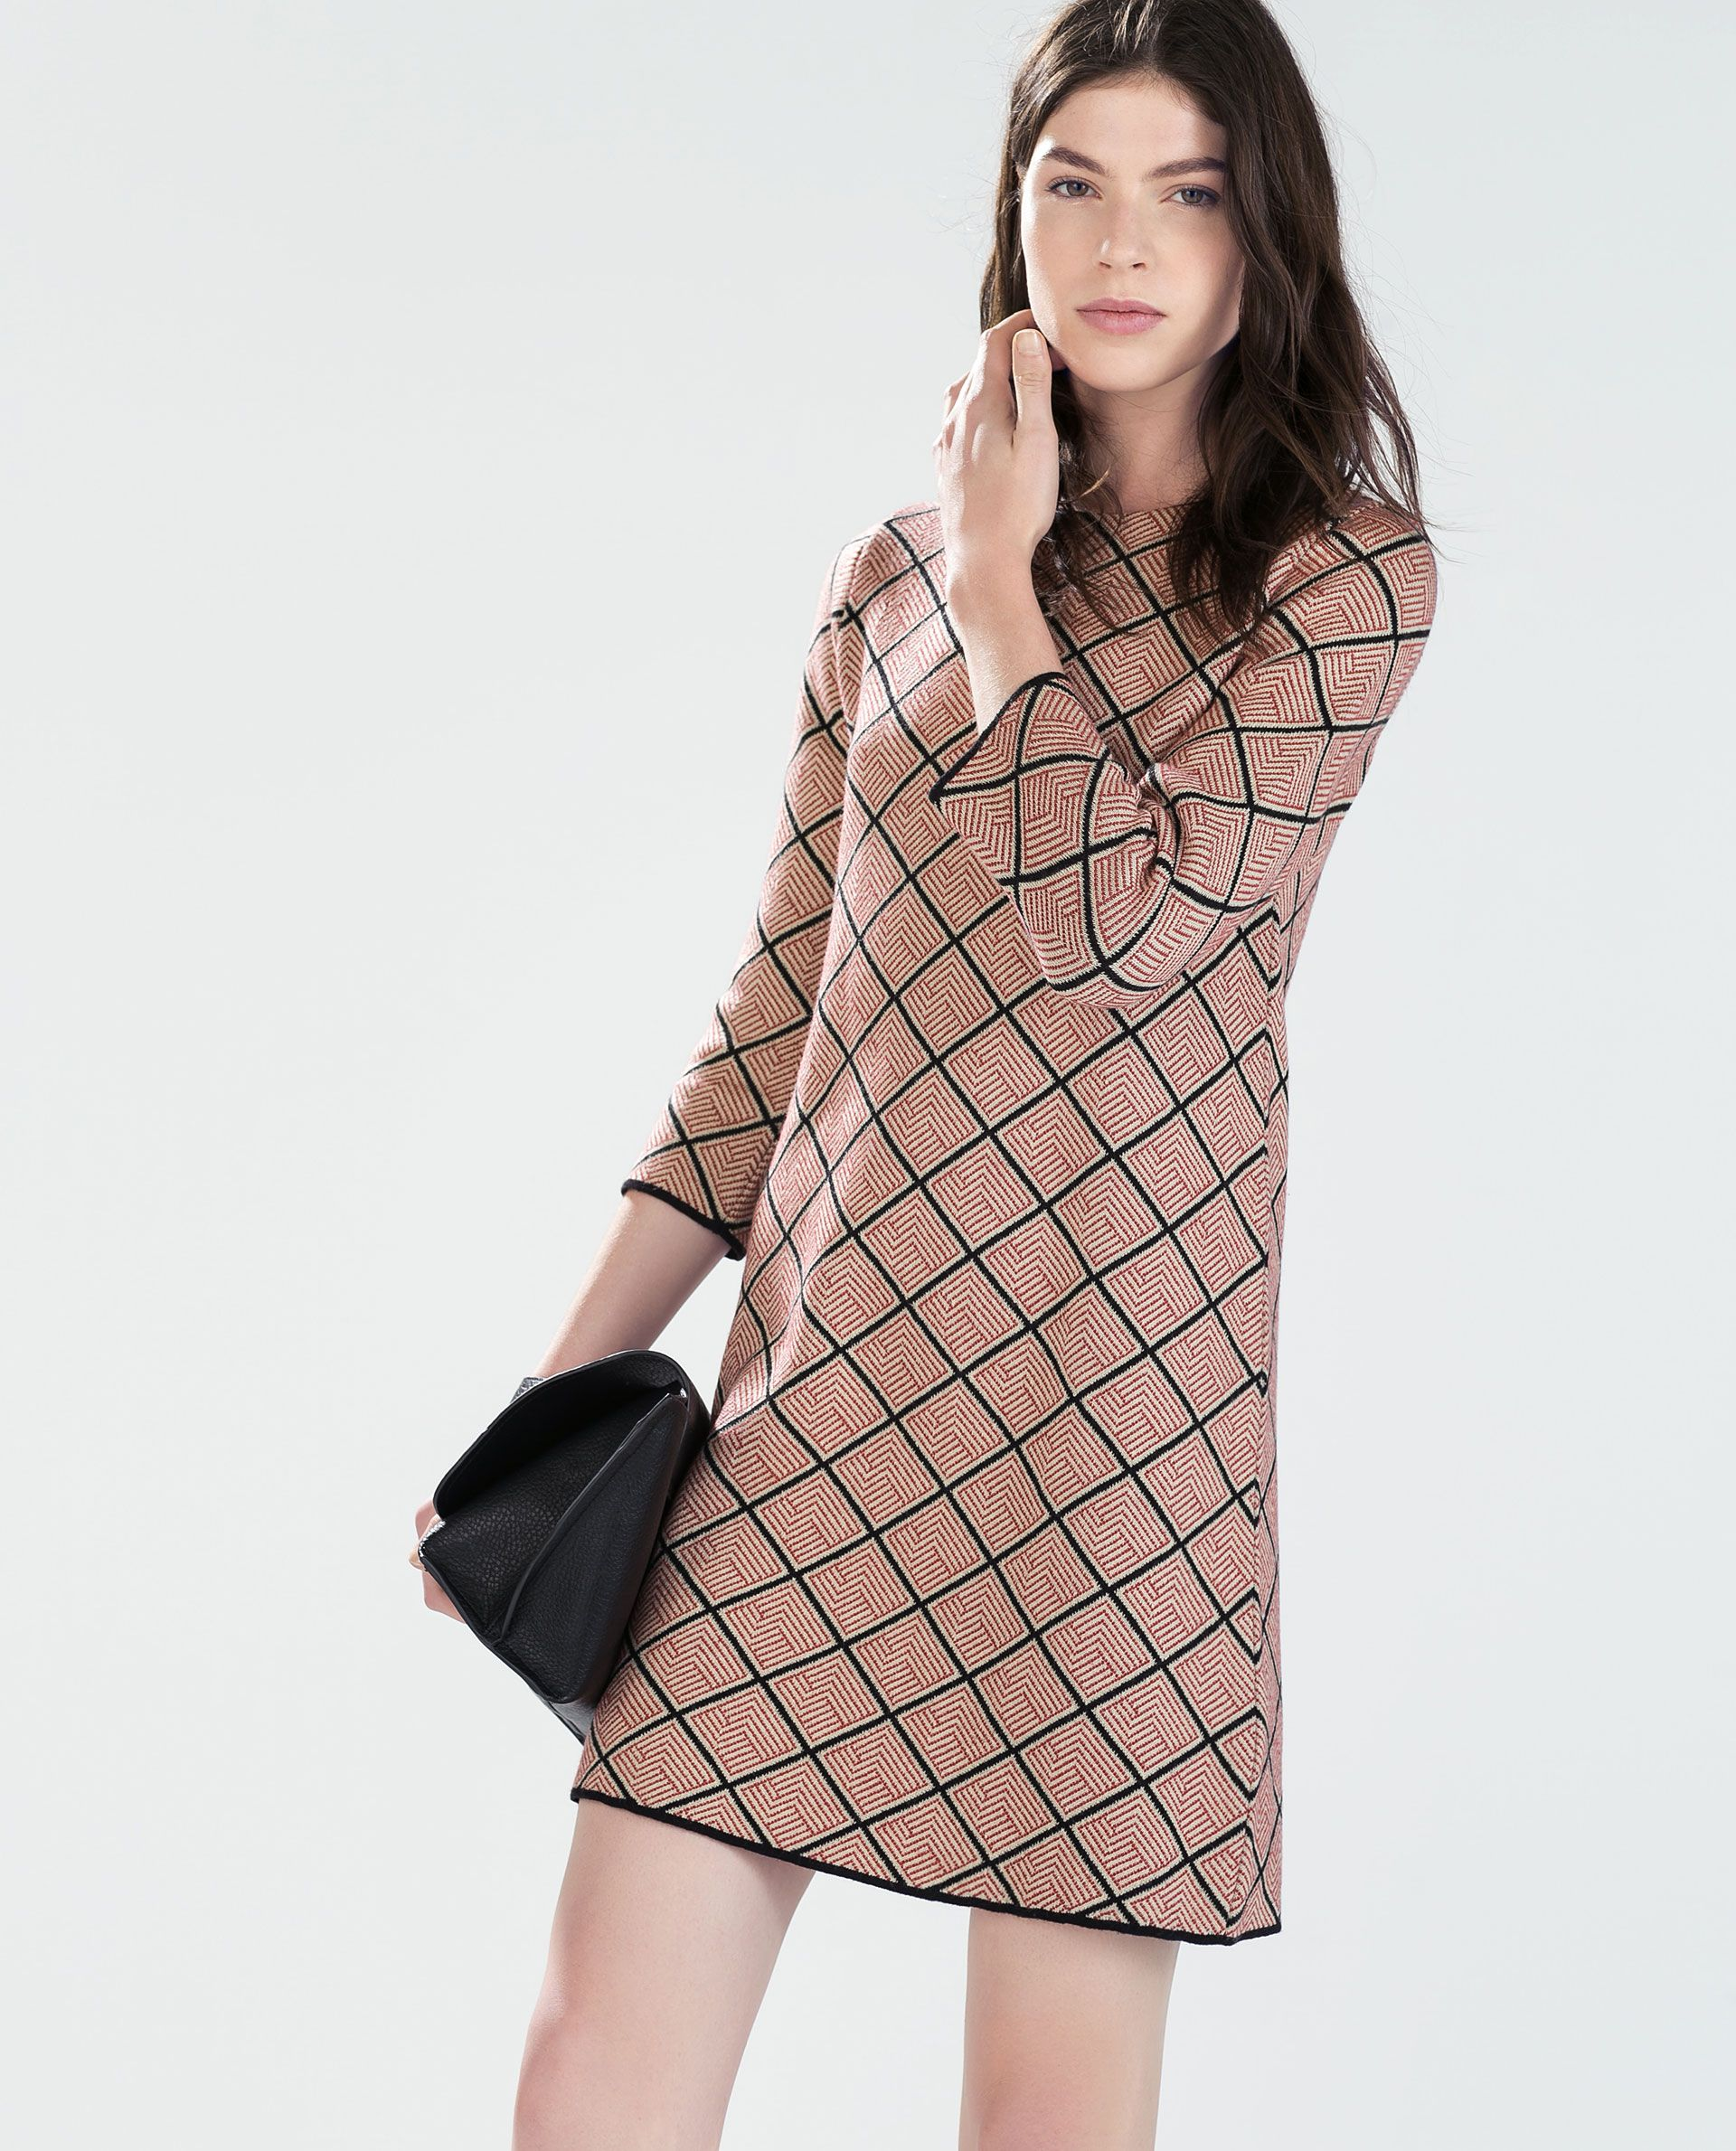 image 2 of micro-jacquard dress from zara | dresses